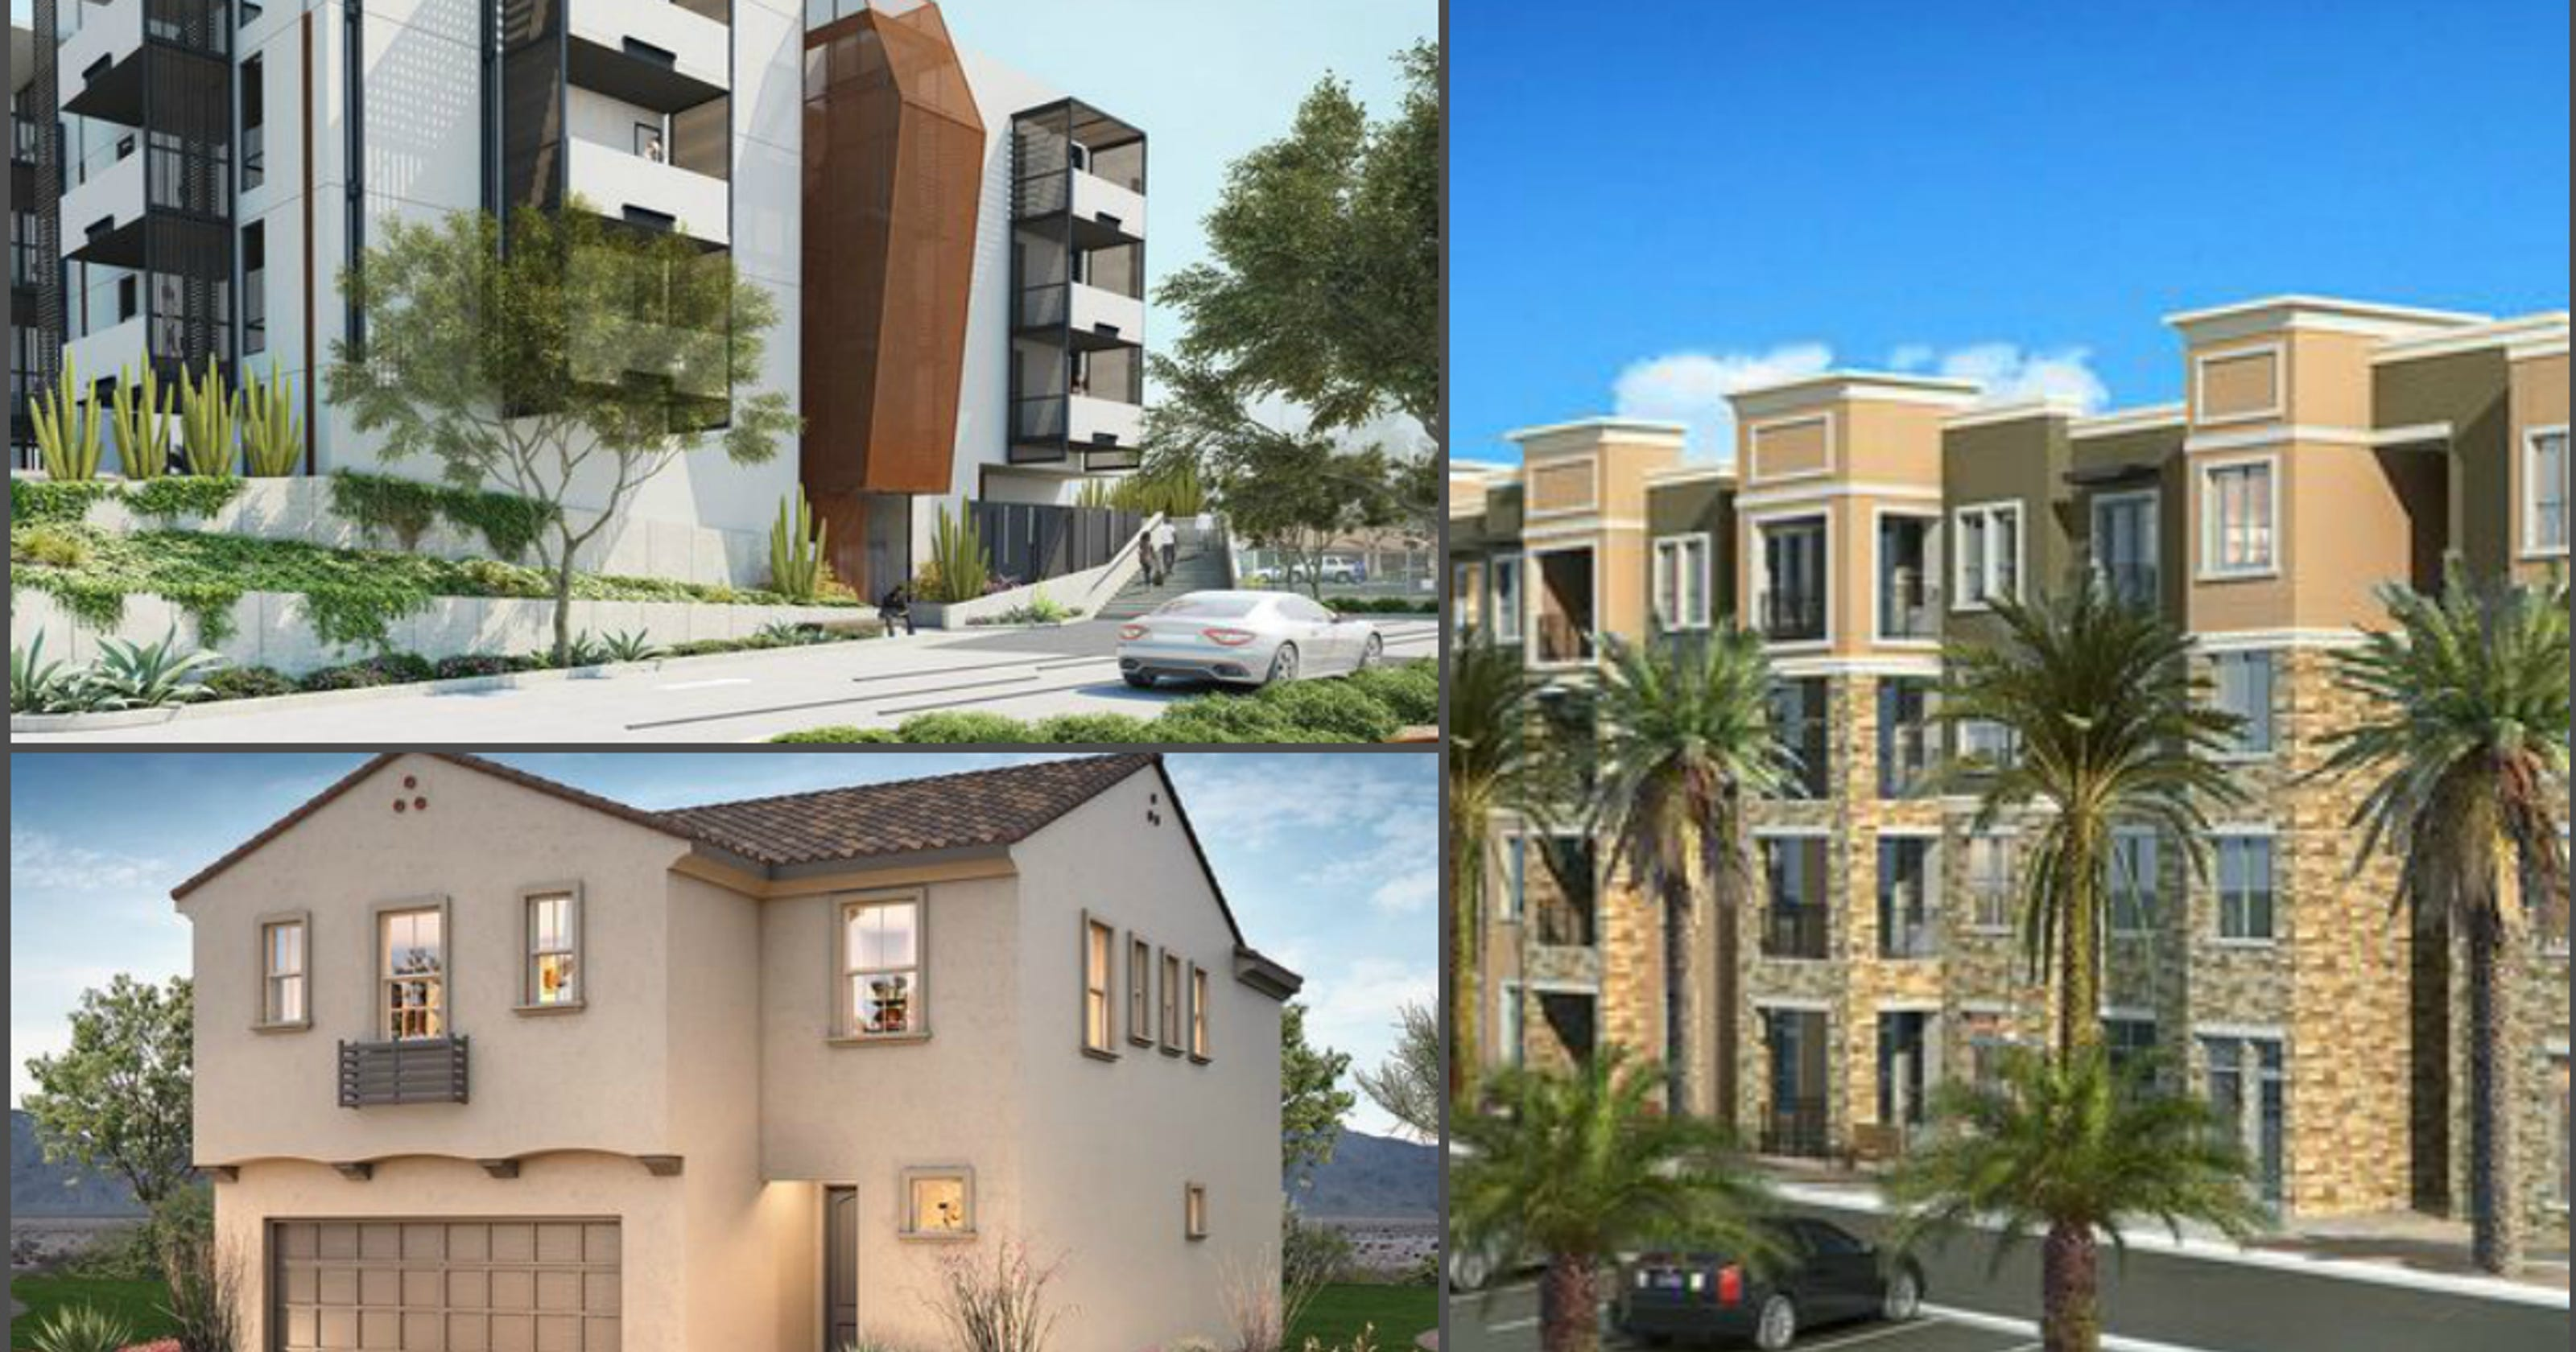 5 New Phoenix Apartment Condo Home Projects Under Construction